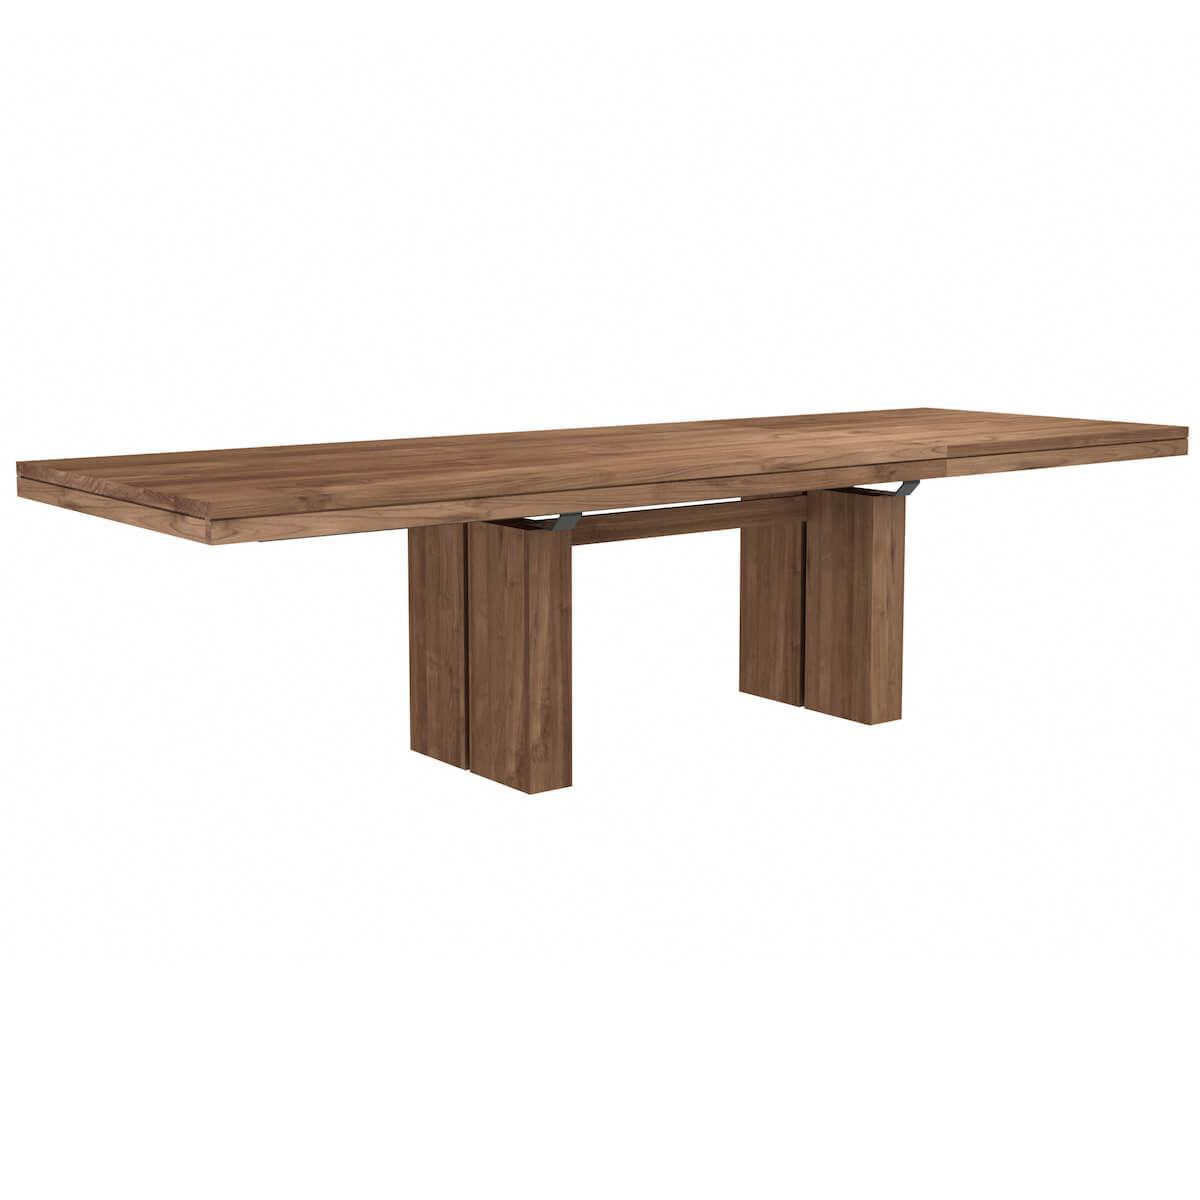 Table à rallonges 100x200/300cm DOUBLE Ethnicraft teck